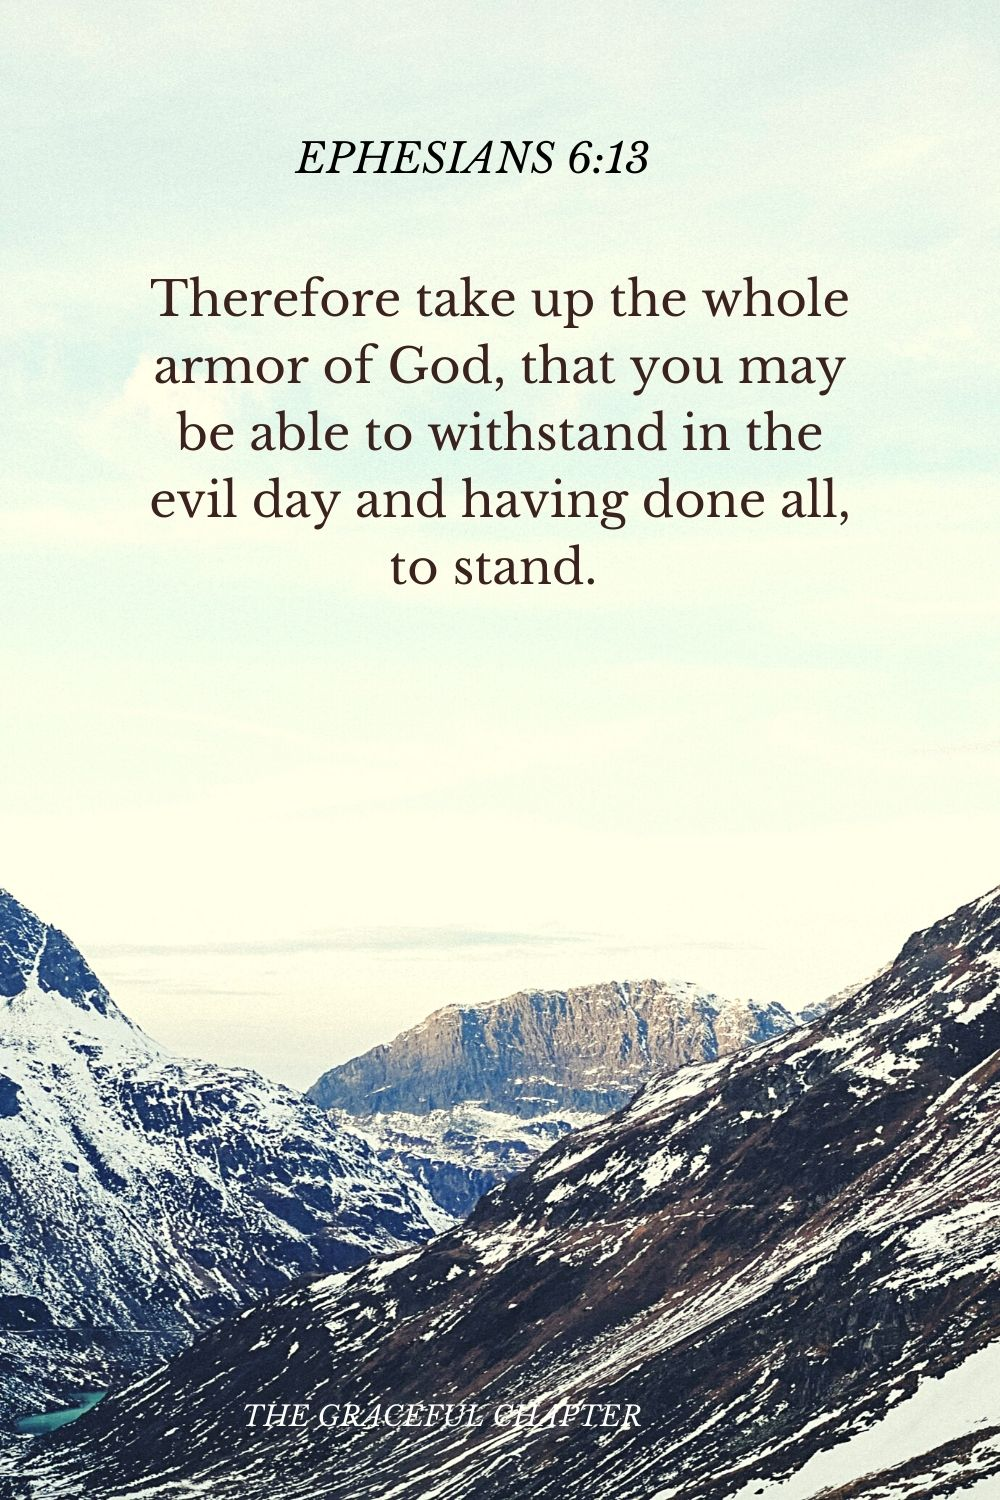 Therefore take up the whole armor of God, that you may be able to withstand in the evil day and having done all, to stand.  Ephesians 6:13